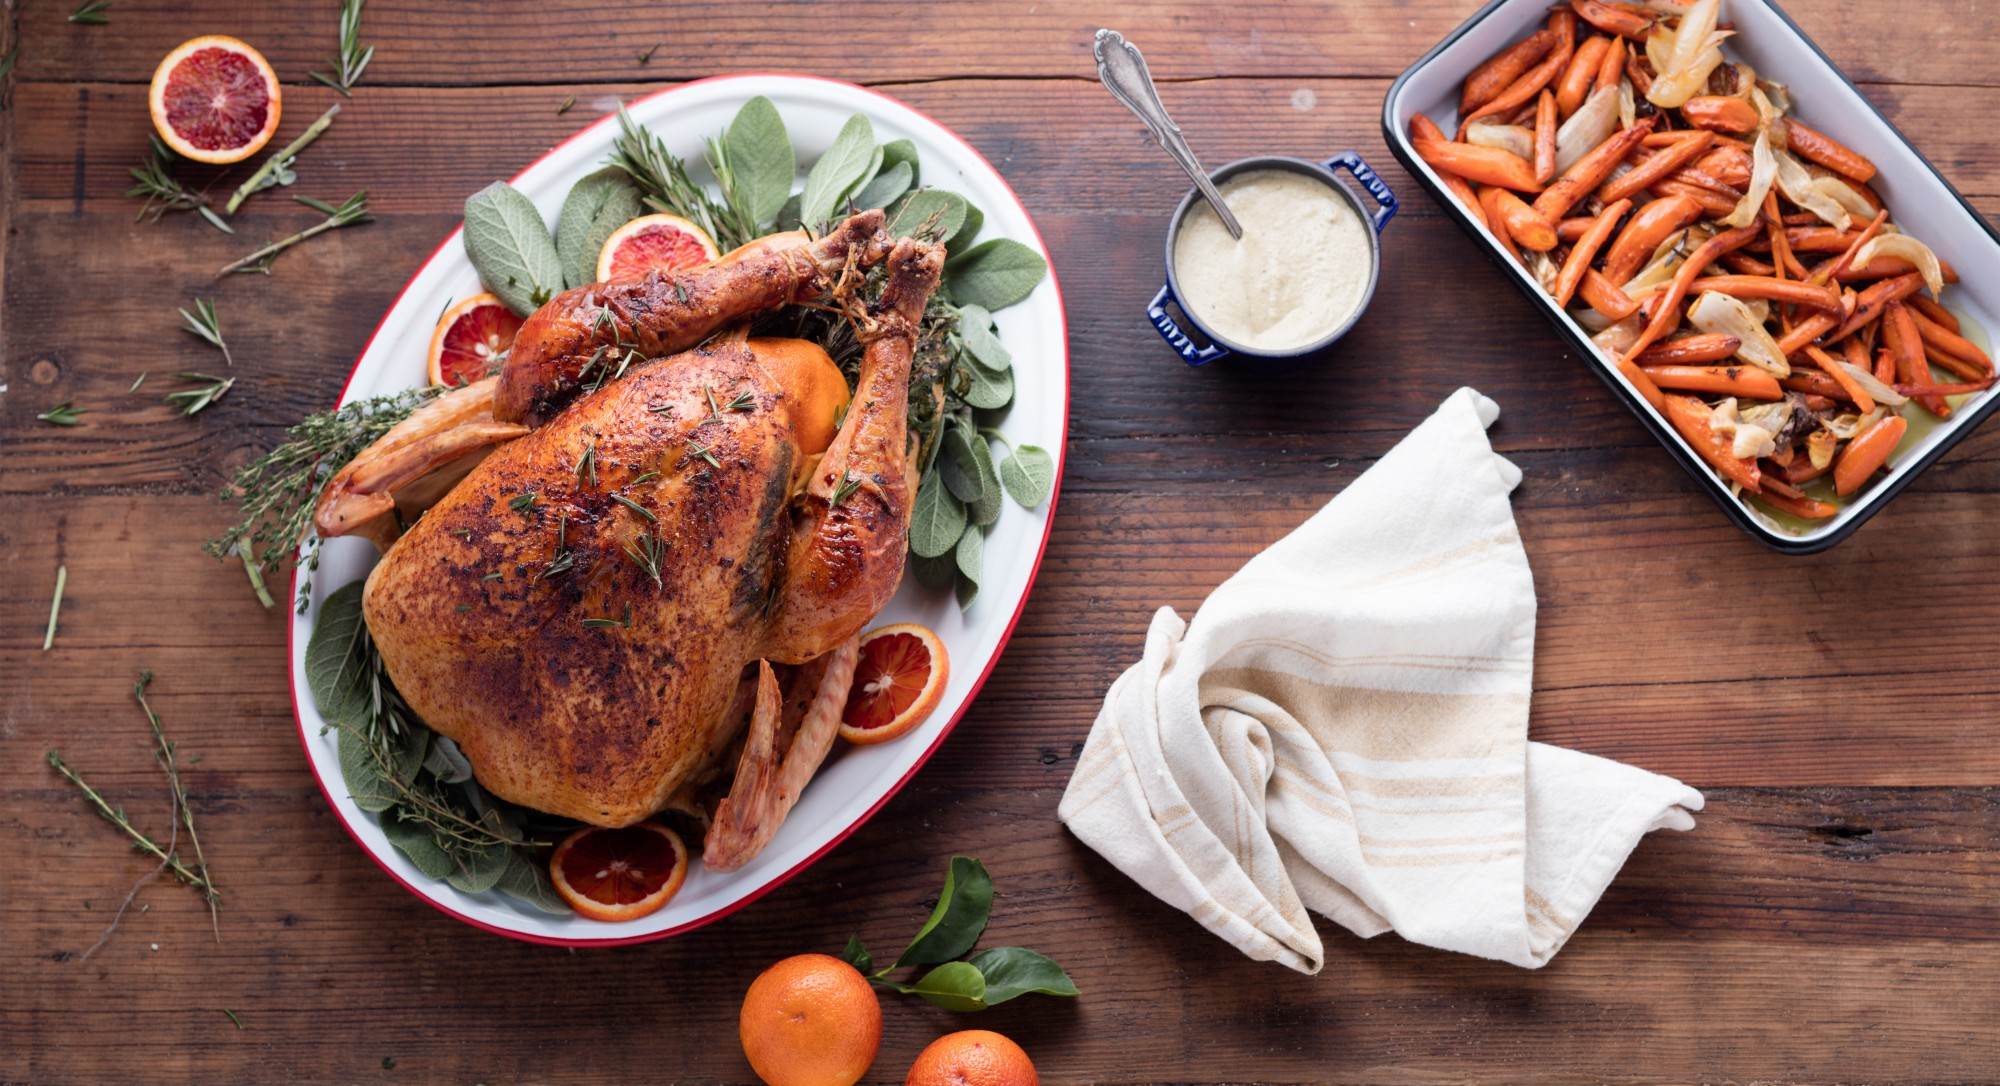 No Talkin' Turkey This Thanksgiving: 3 Tips for Keeping Table Talk Civil